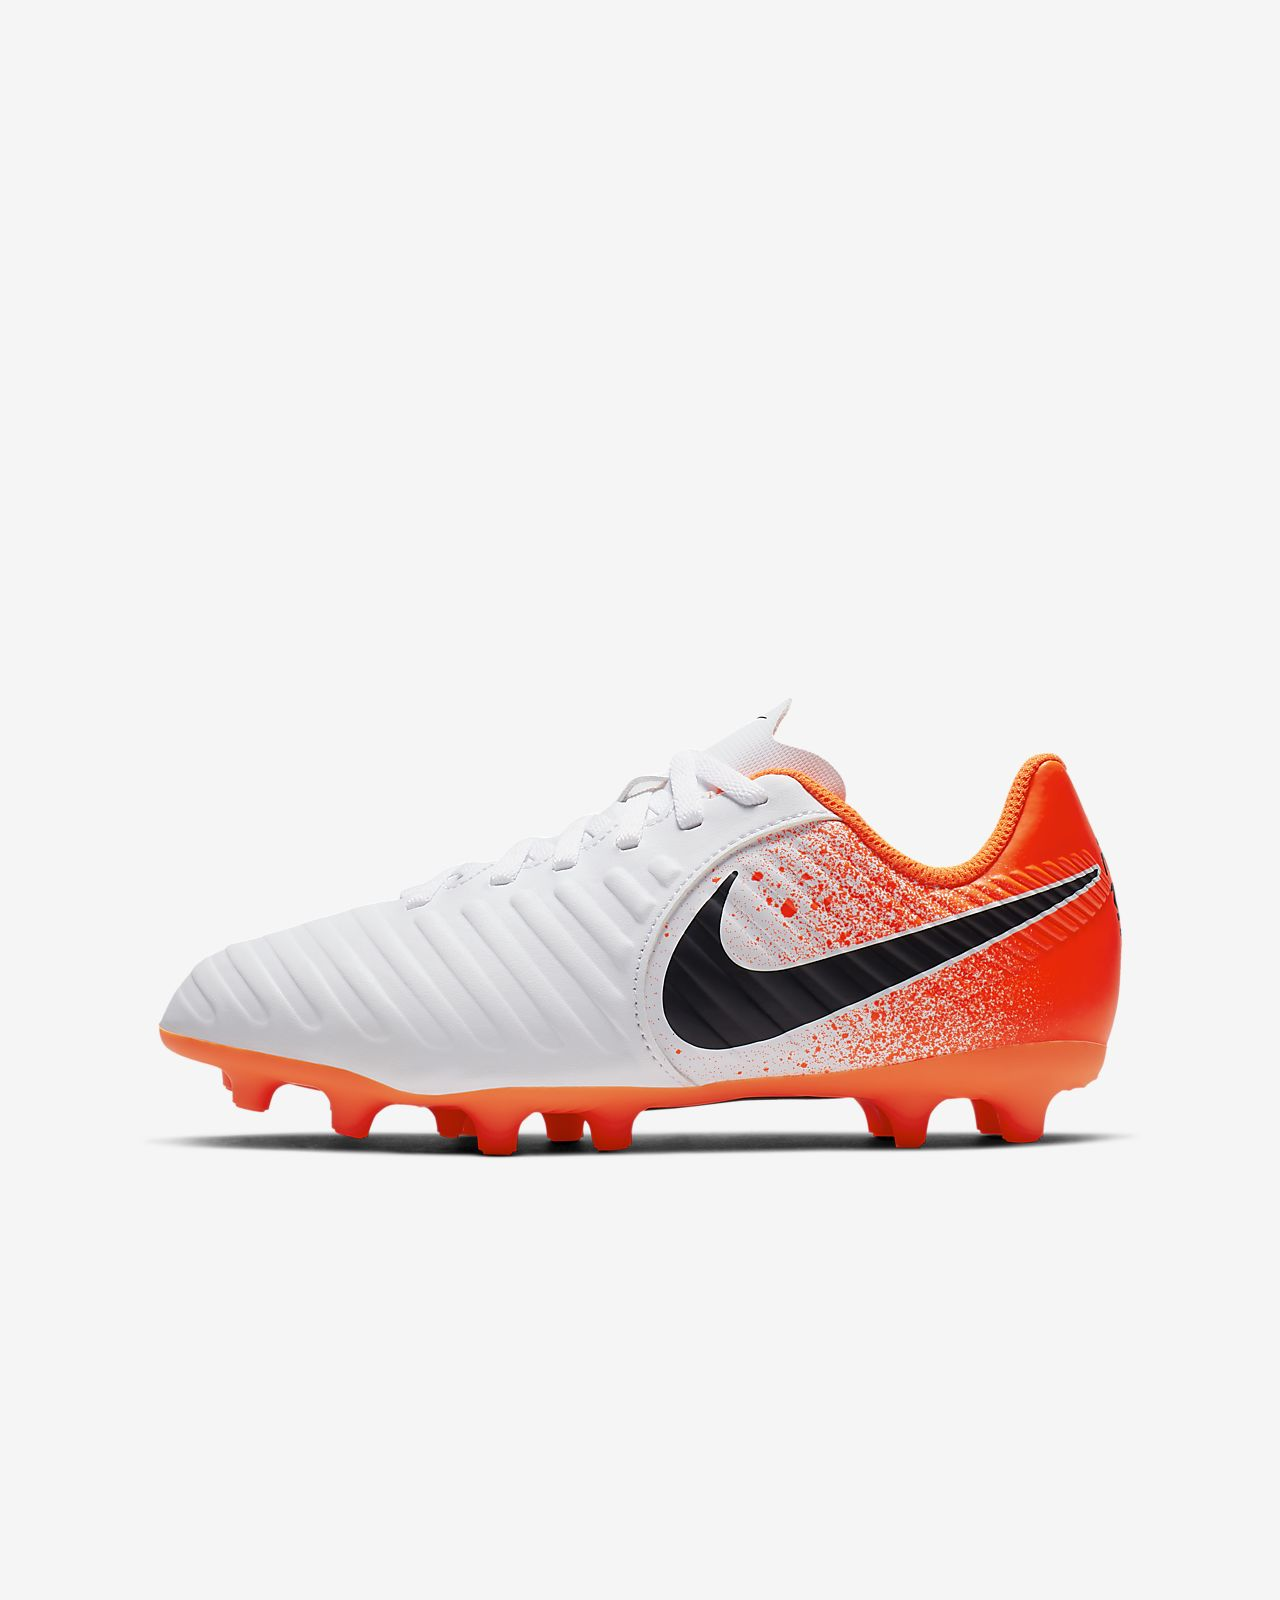 5d564b6e1 ... Kids  Firm-Ground Football Boot. Nike Jr. Tiempo Legend VII Club FG